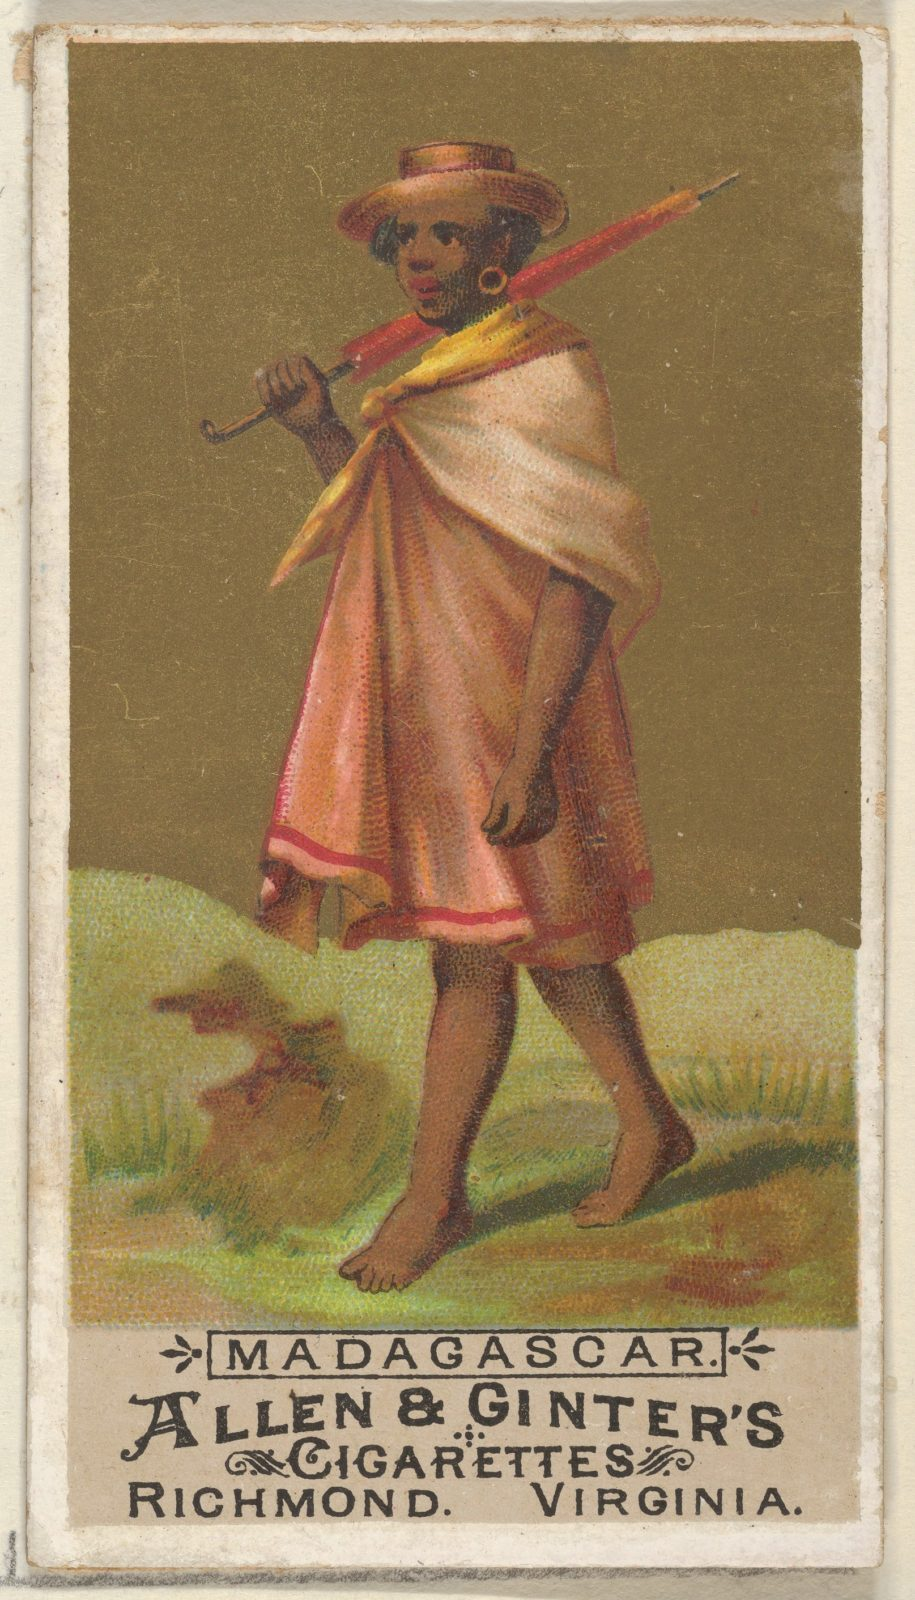 Madagascar, from the Natives in Costume series (N16) for Allen & Ginter Cigarettes Brands